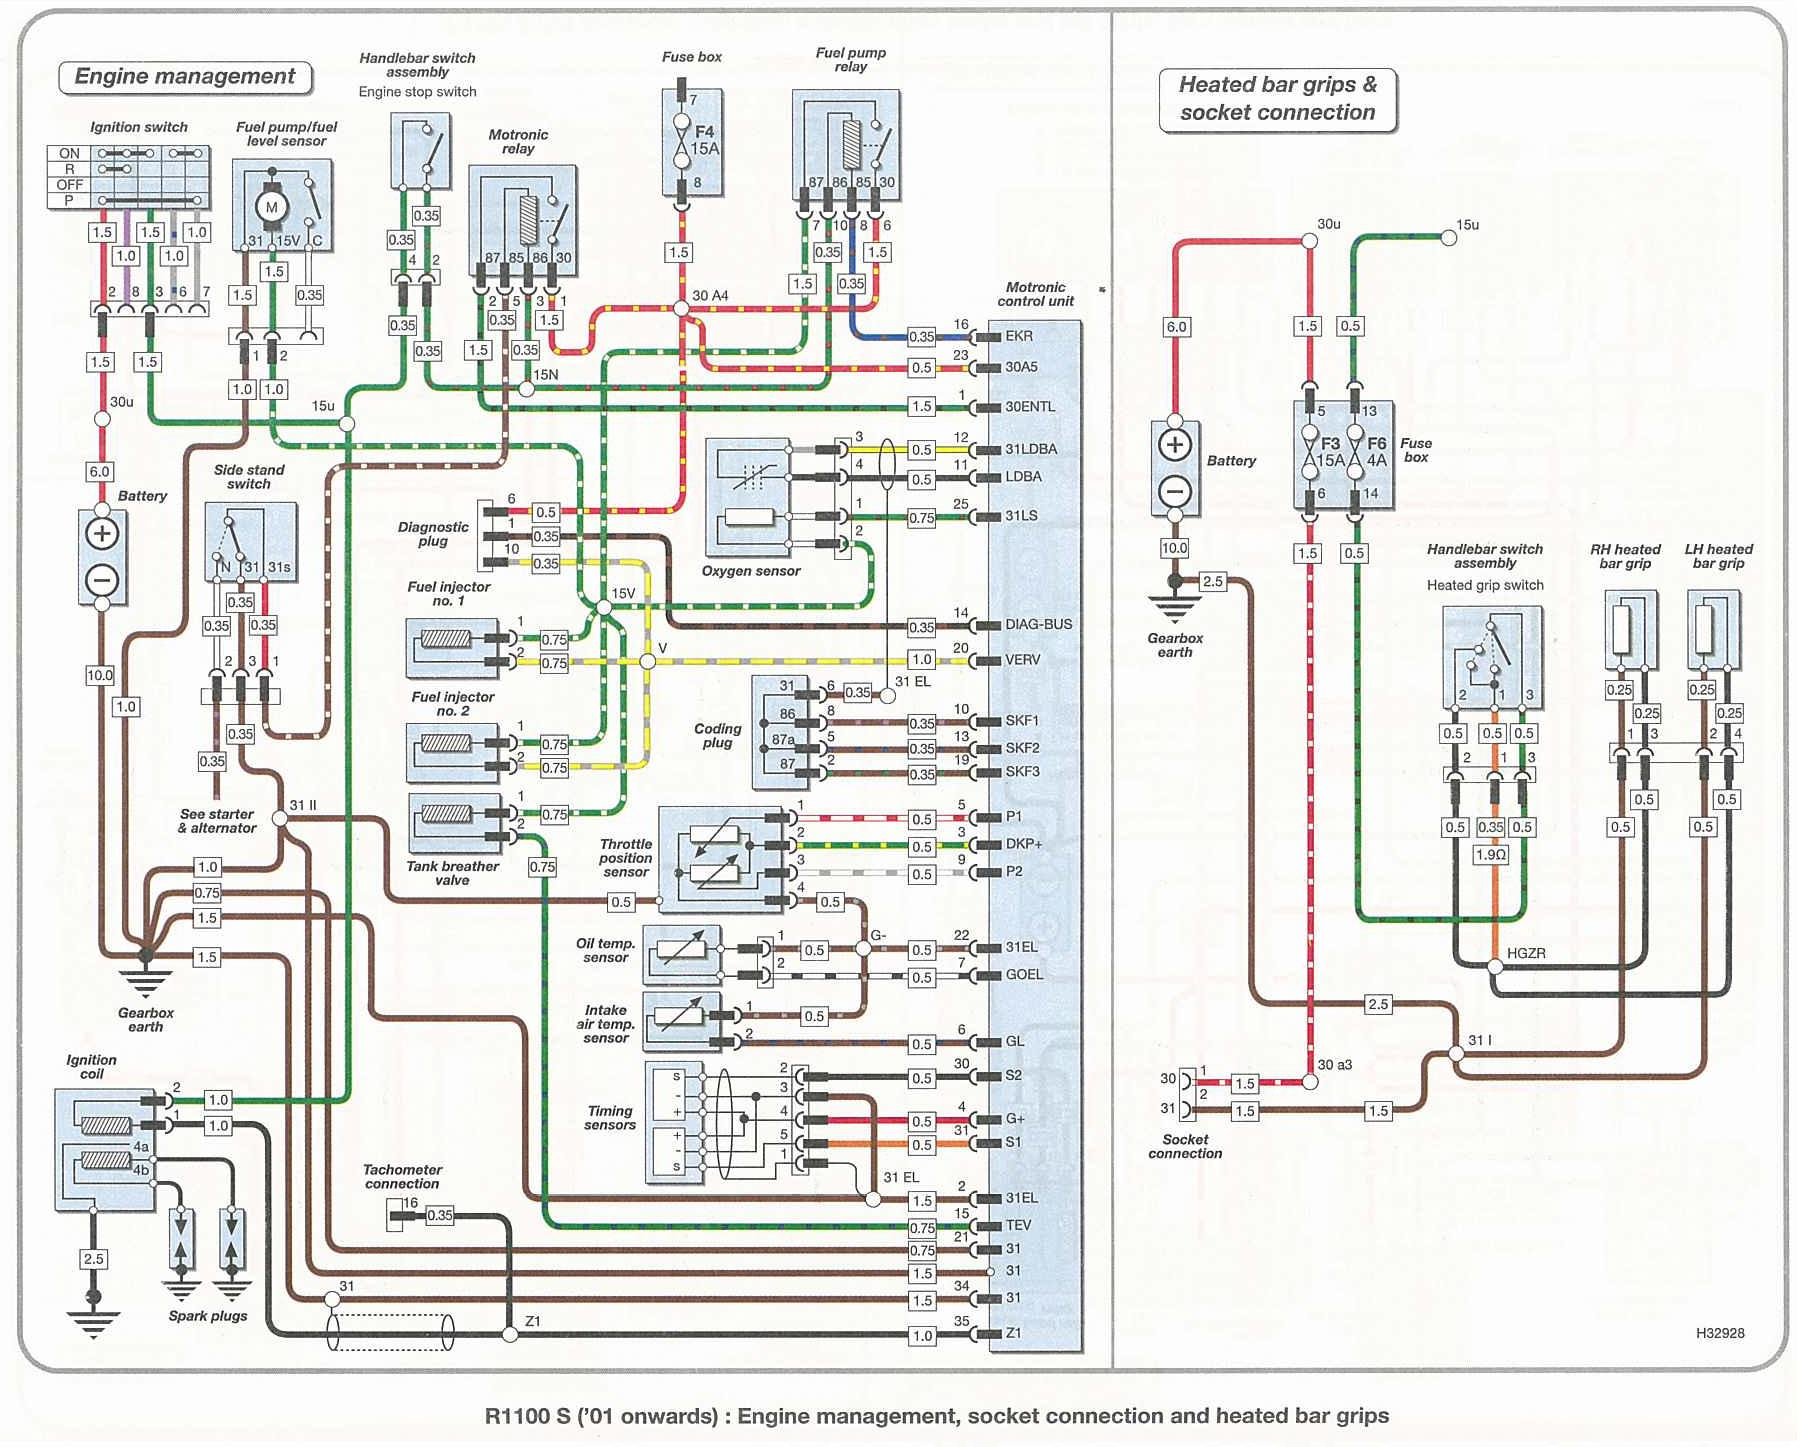 wiring07 bmw r1100s wiring diagrams bmw wiring diagrams at reclaimingppi.co